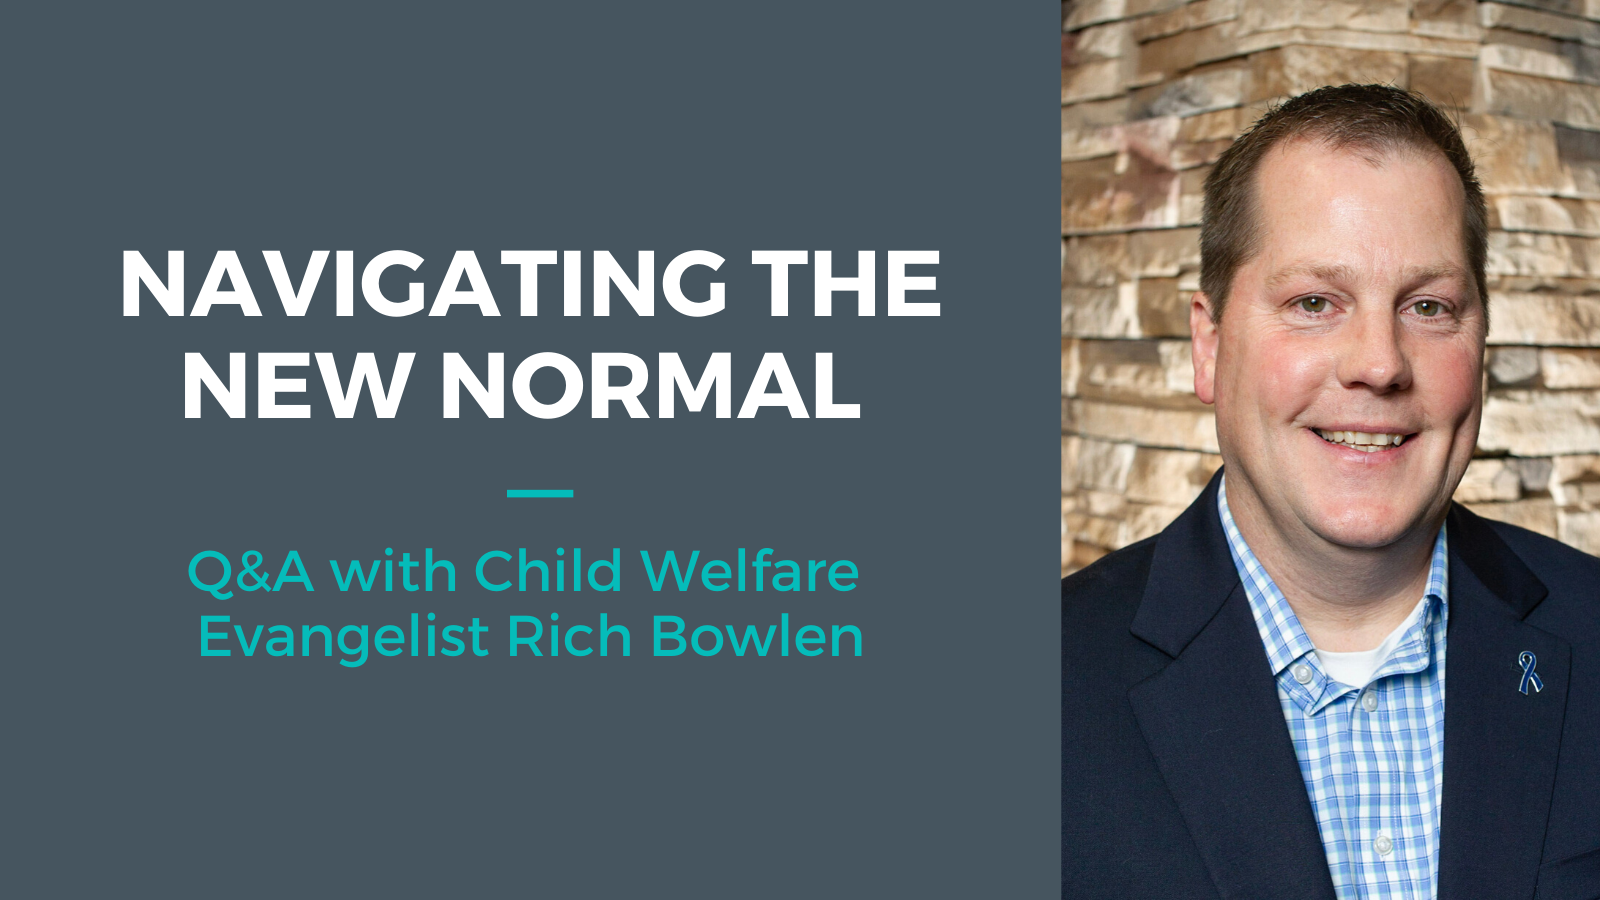 Navigating the New Normal (Q&A with Child Welfare Evangelist Rich Bowlen)